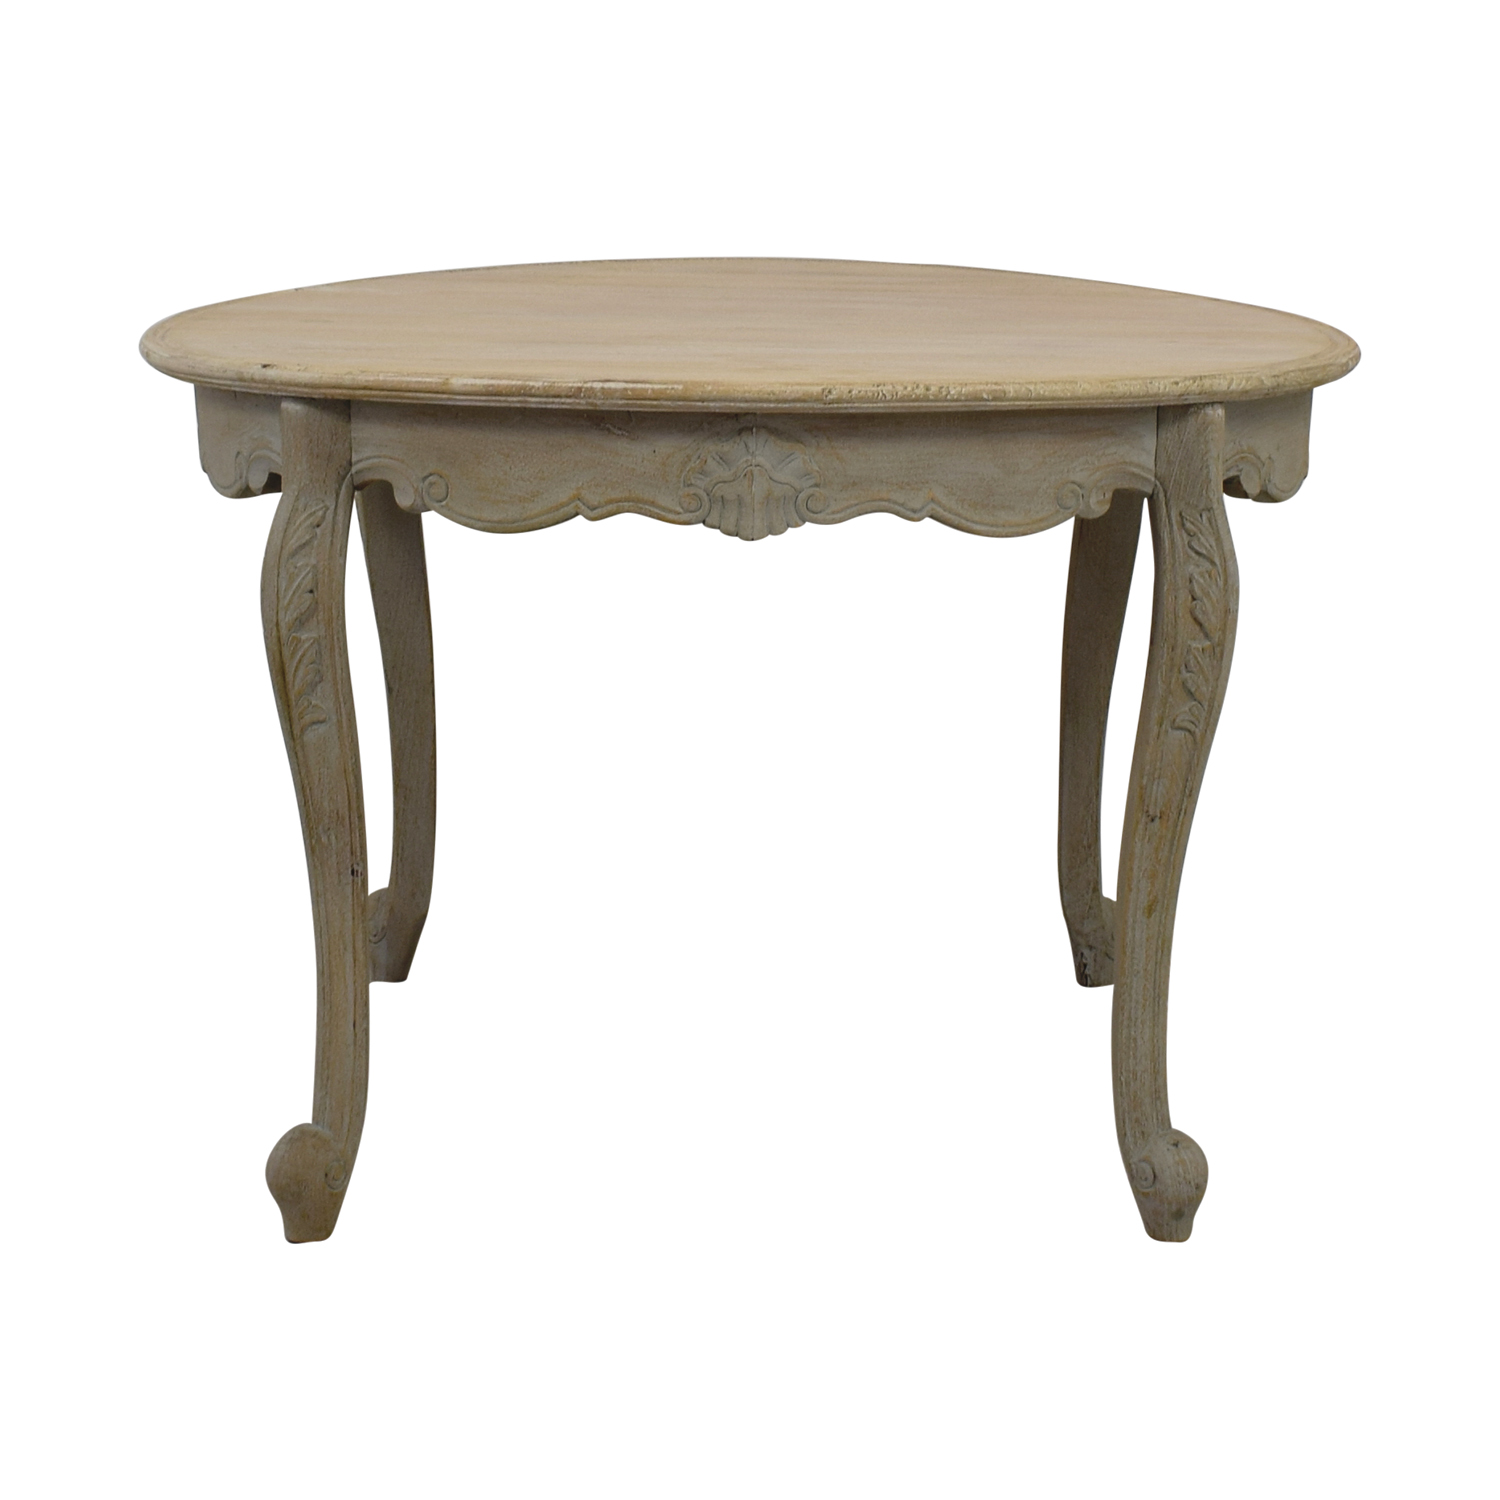 buy Anthropologie Distressed Dovetailed Dining Table Anthropologie Dinner Tables